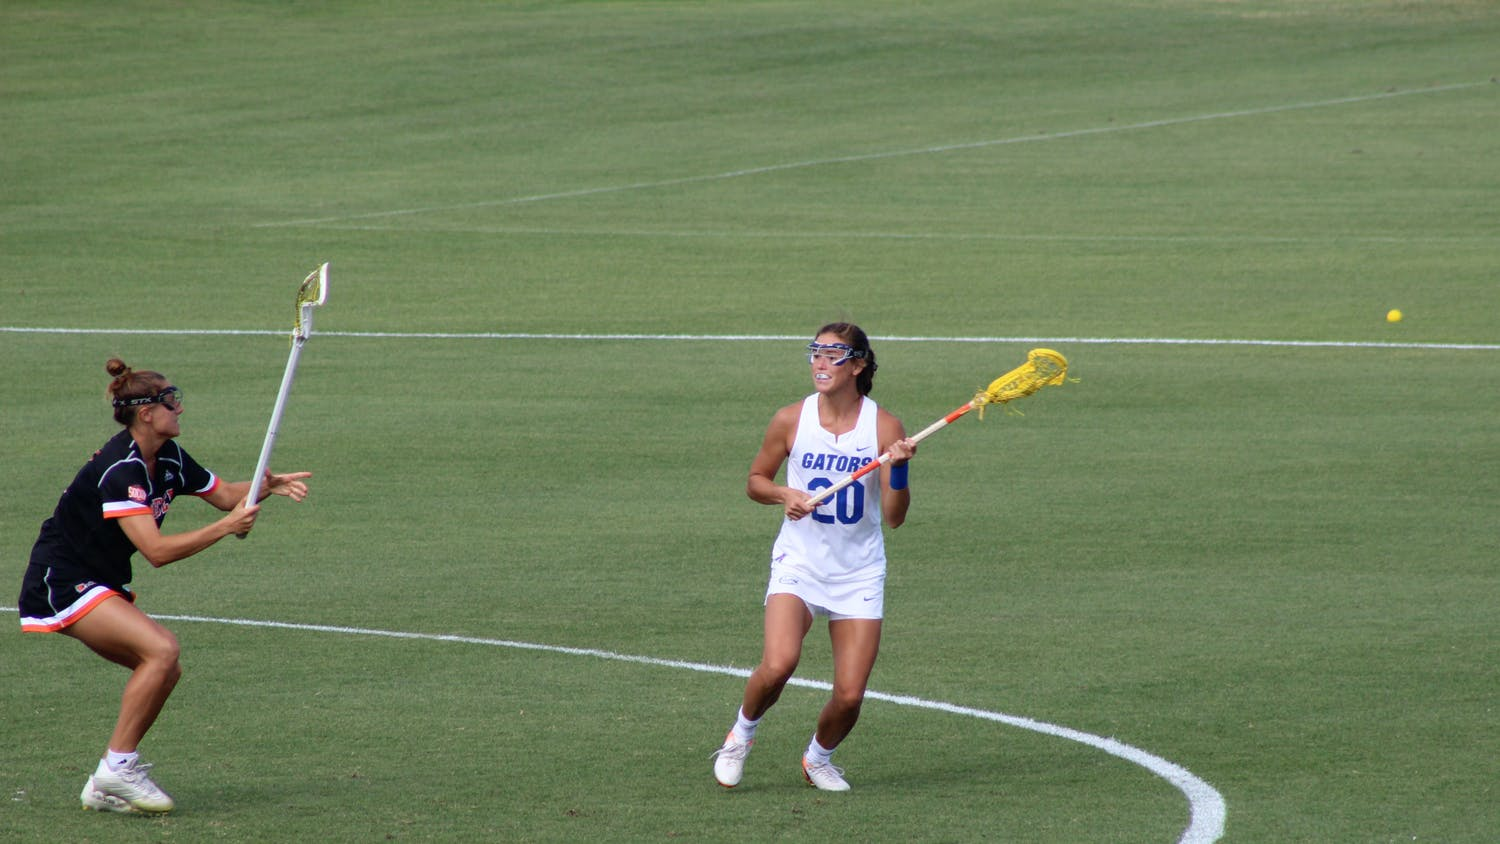 Attacker Brianna Harris against Mercer. Harris leads the Gators into a second-round matchup with Jacksonville University Sunday.